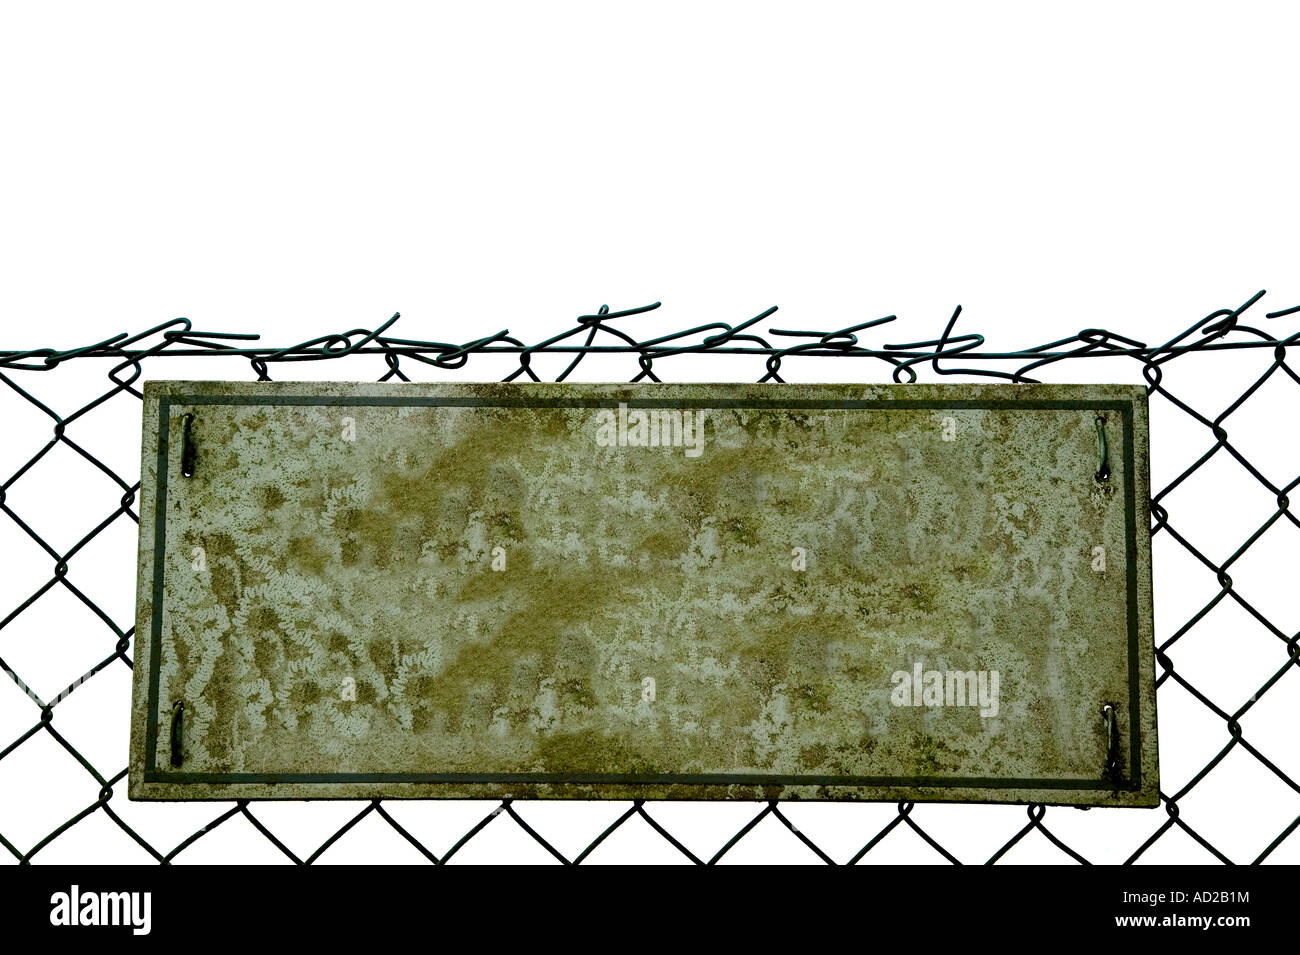 Blank Grungey old sign on a chainlink fence isolated on white - Stock Image